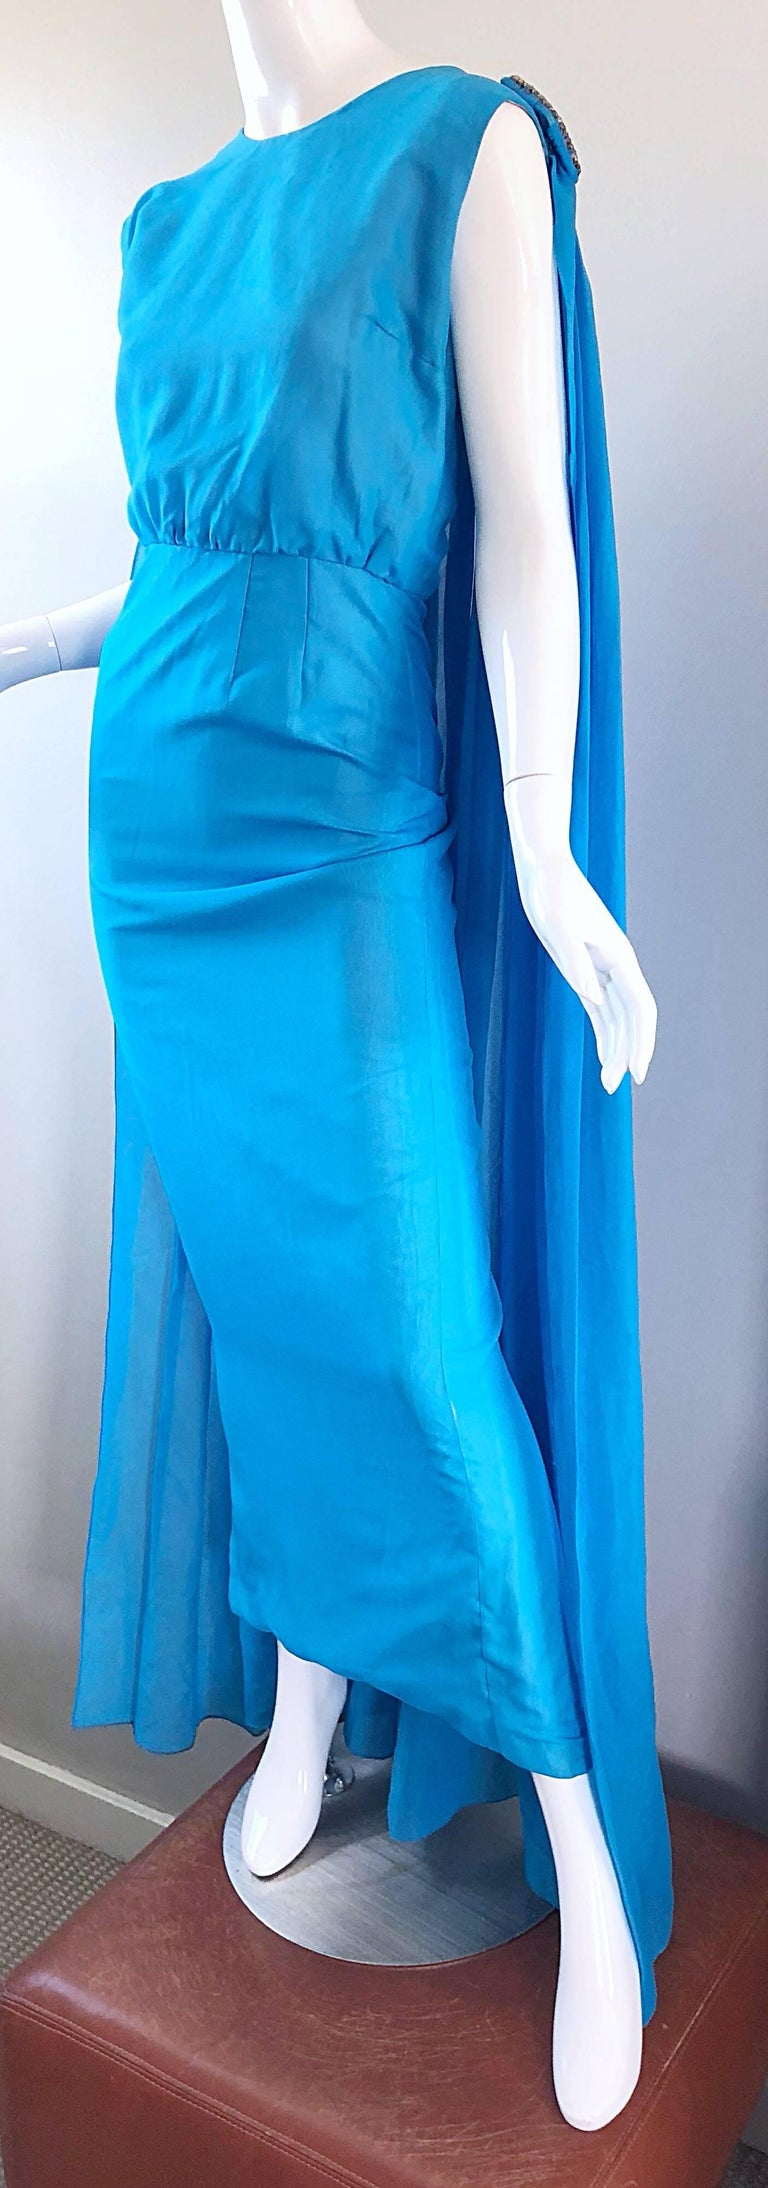 Incredible 1960s Turquoise Blue Chiffon Rhinestone Encrusted Vintage Cape Gown For Sale 6